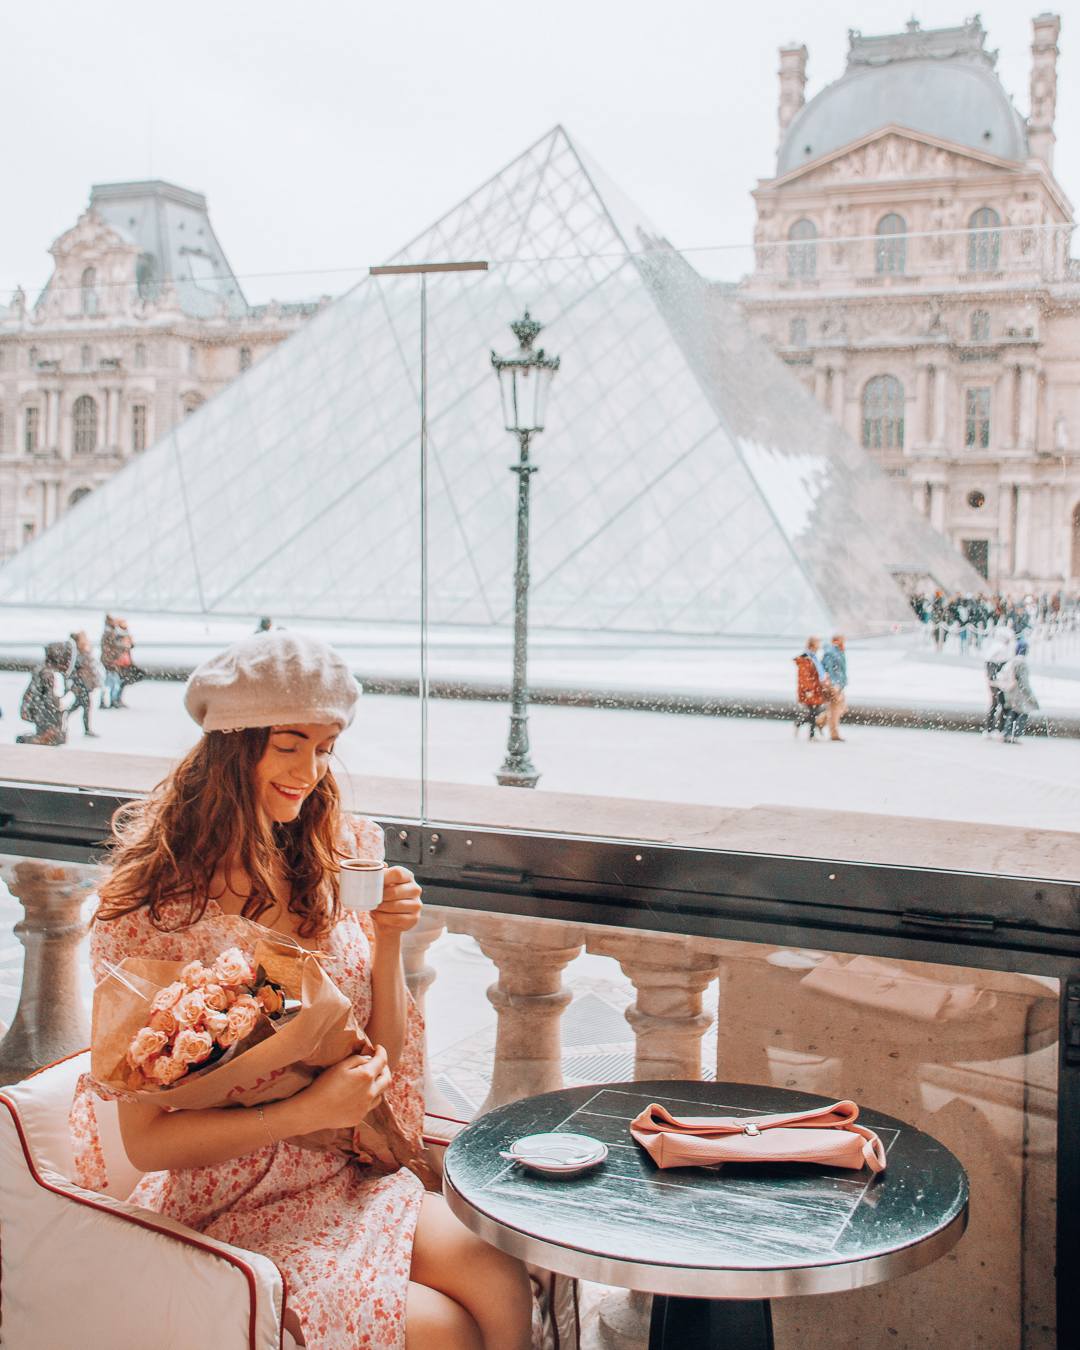 View of the Louvre in Paris